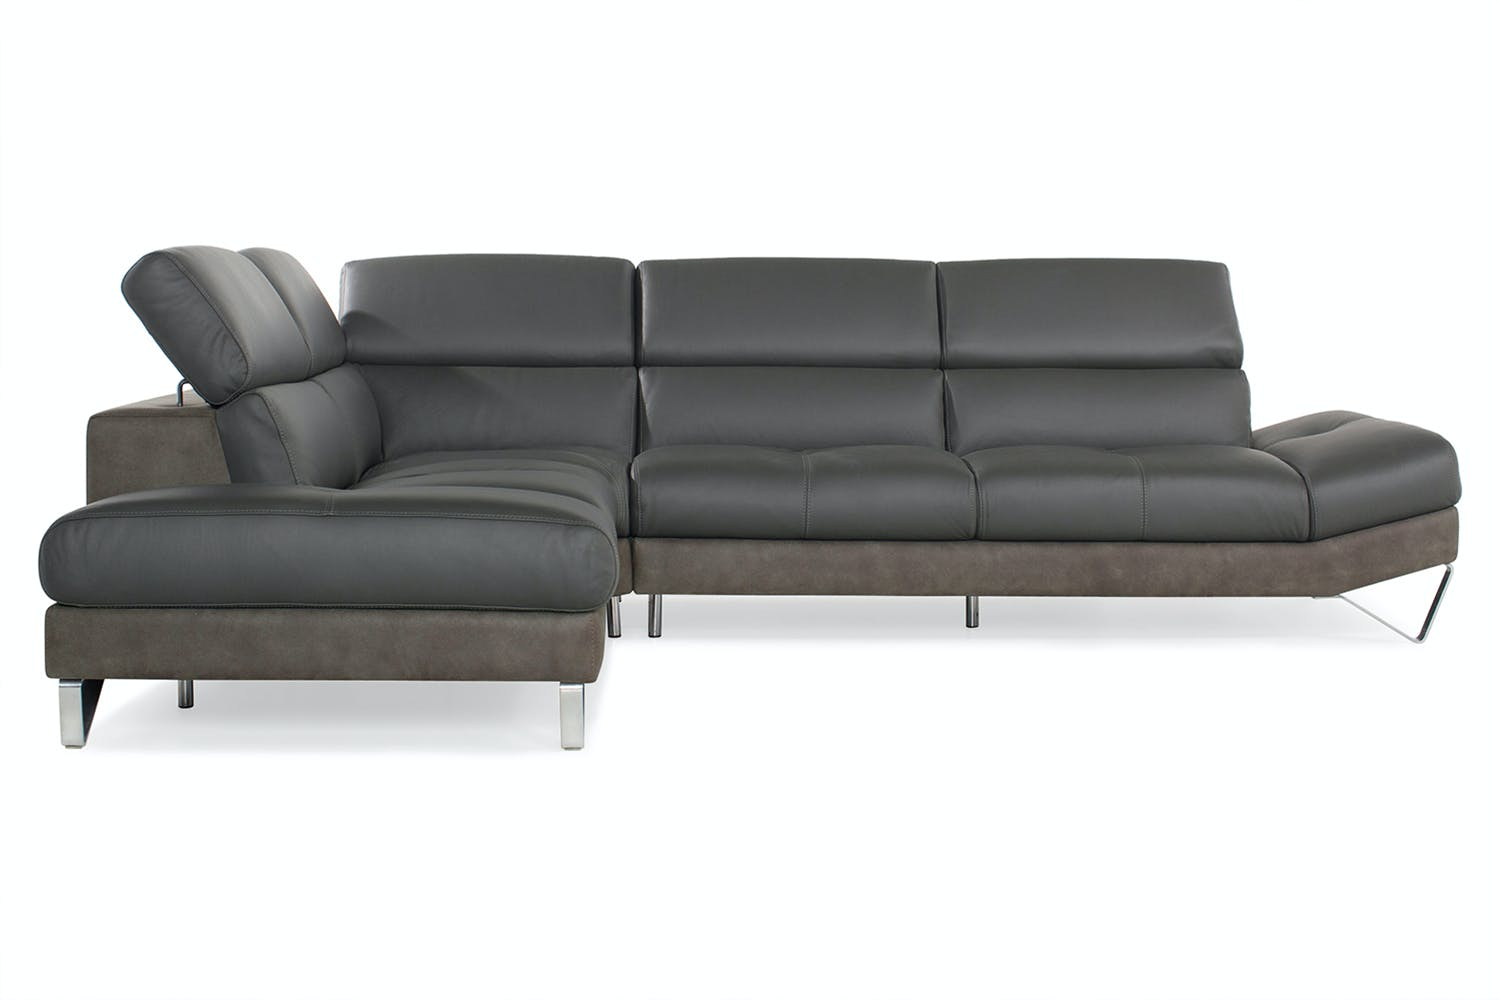 Pleasing Leather Sofas Harvey Norman Ireland Gmtry Best Dining Table And Chair Ideas Images Gmtryco